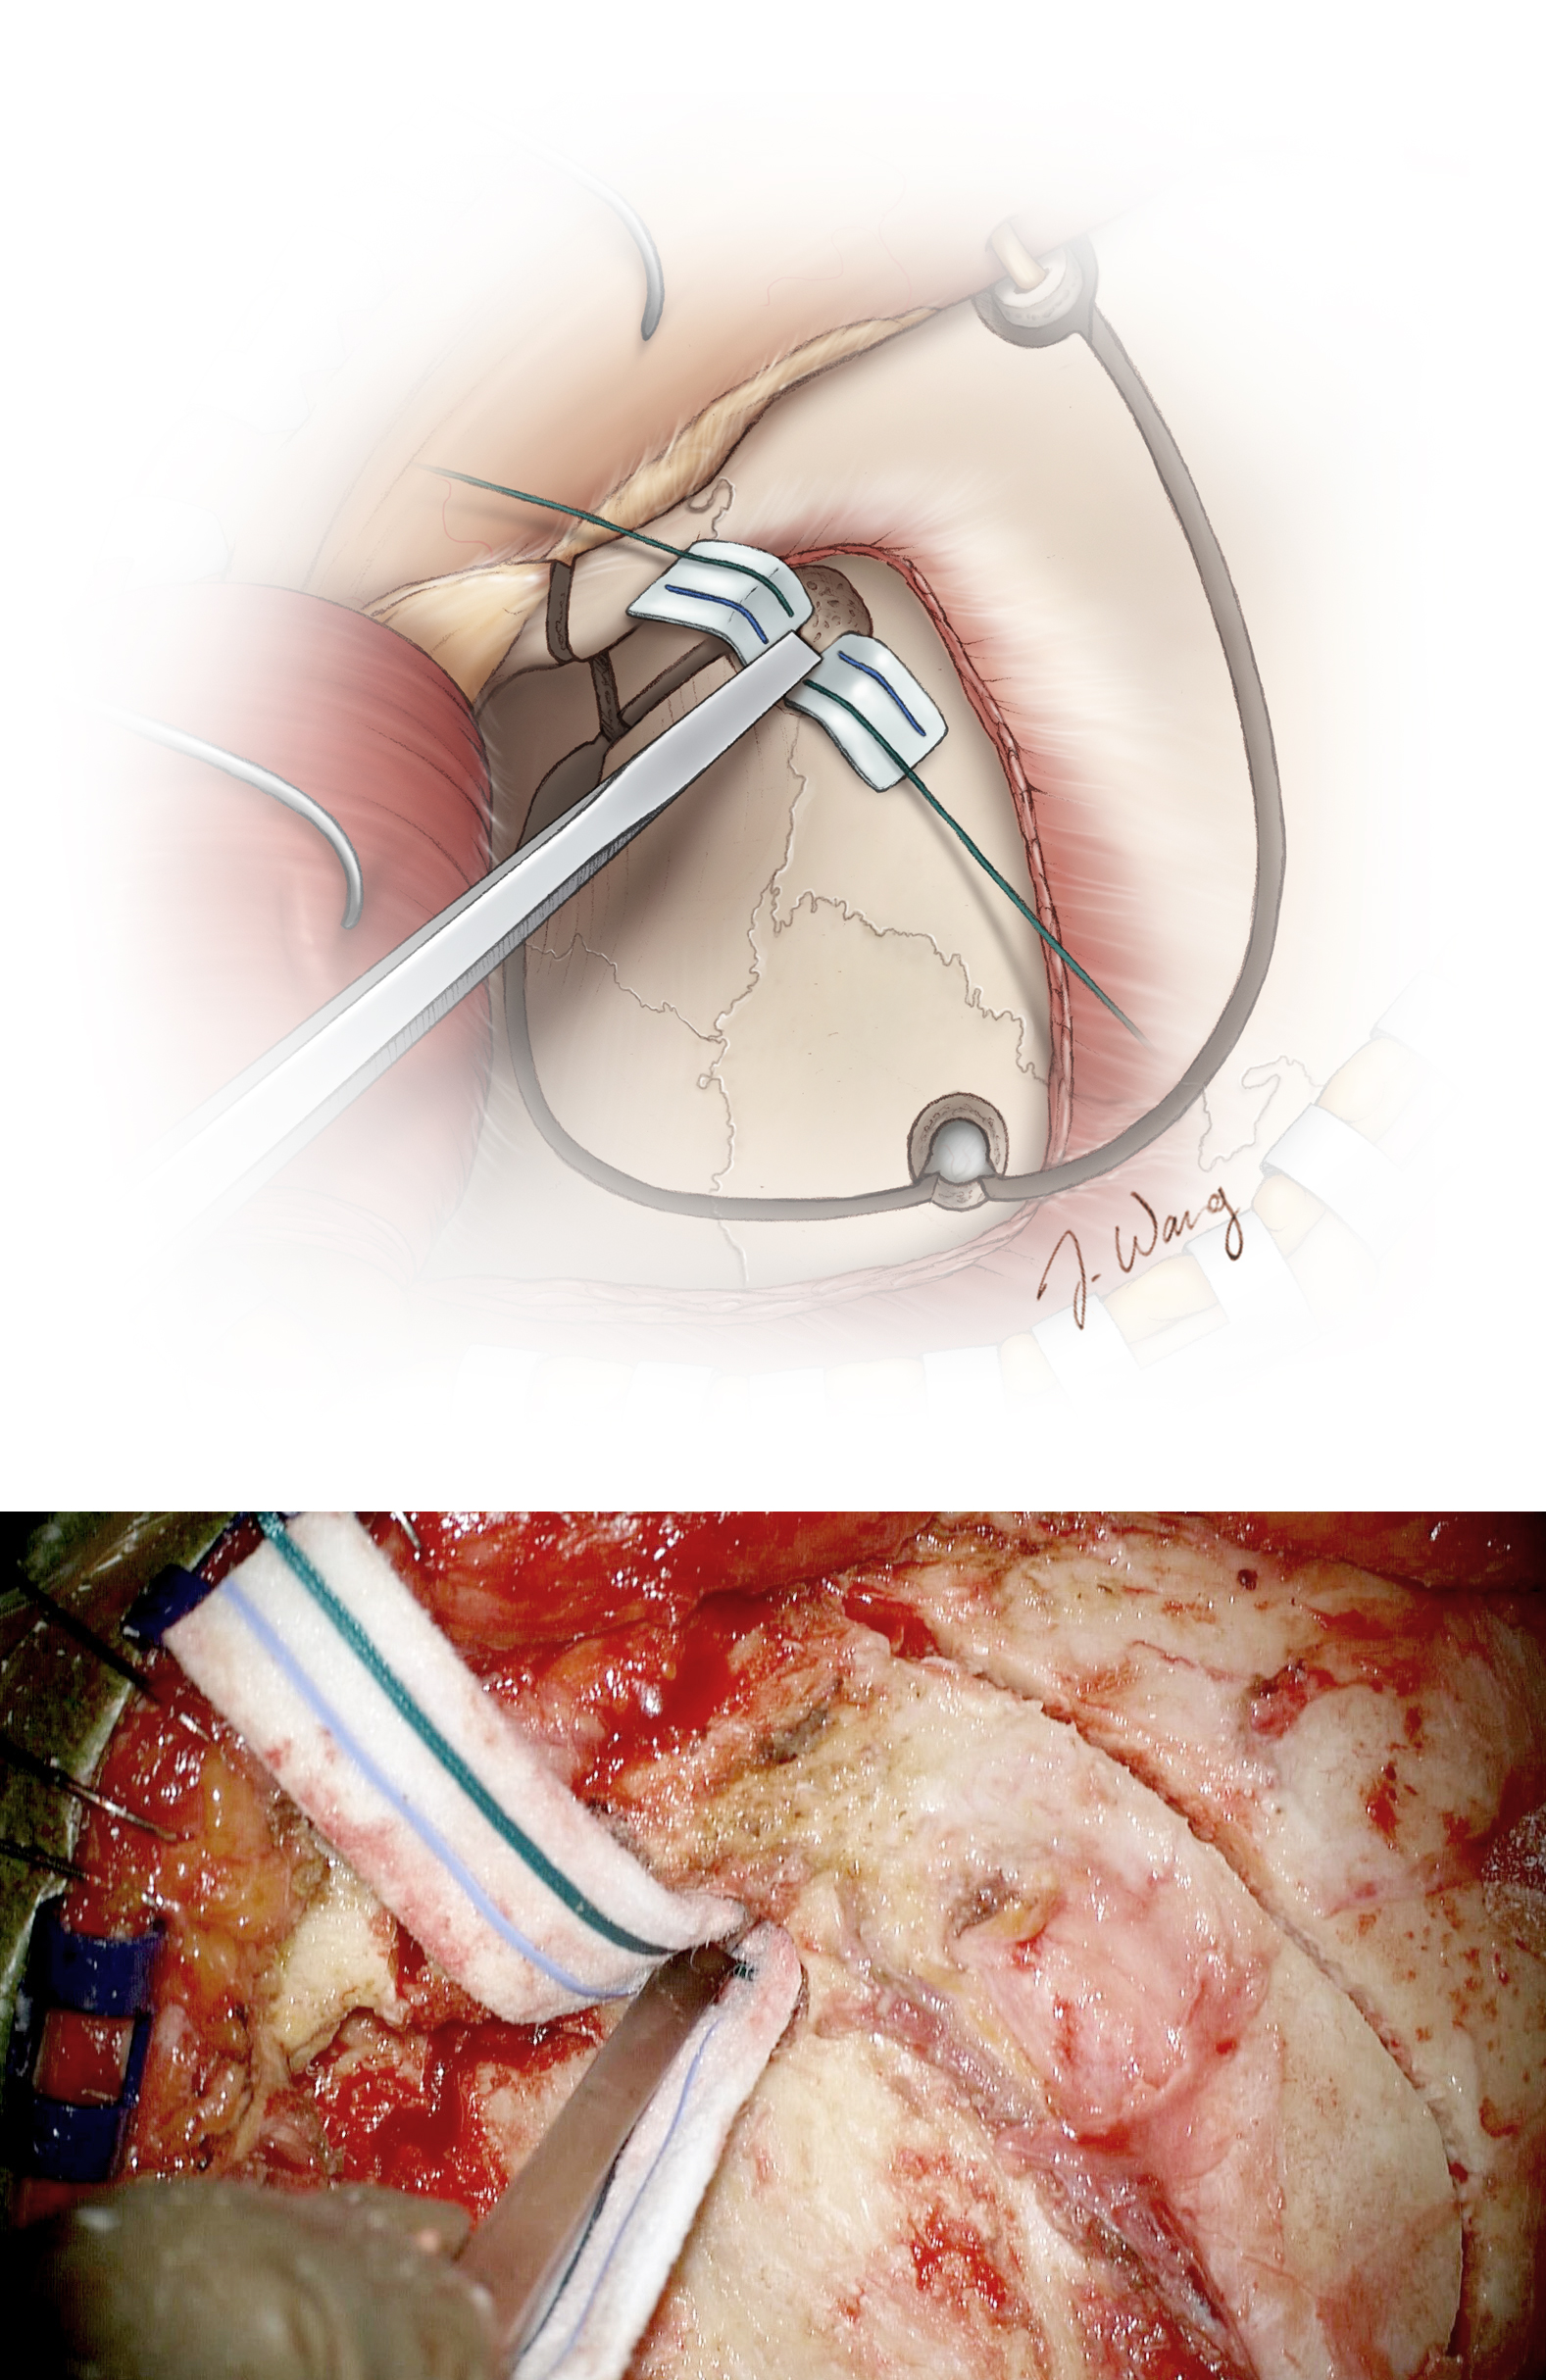 Figure 28: An alternative method for completing the orbital roof osteotomy involves the use of a small thin osteotome to cut across the roof of the orbit through the keyhole. Two cotton patties may be used to protect the frontal dura posteriorly and the periorbita inferiorly from the osteotome.